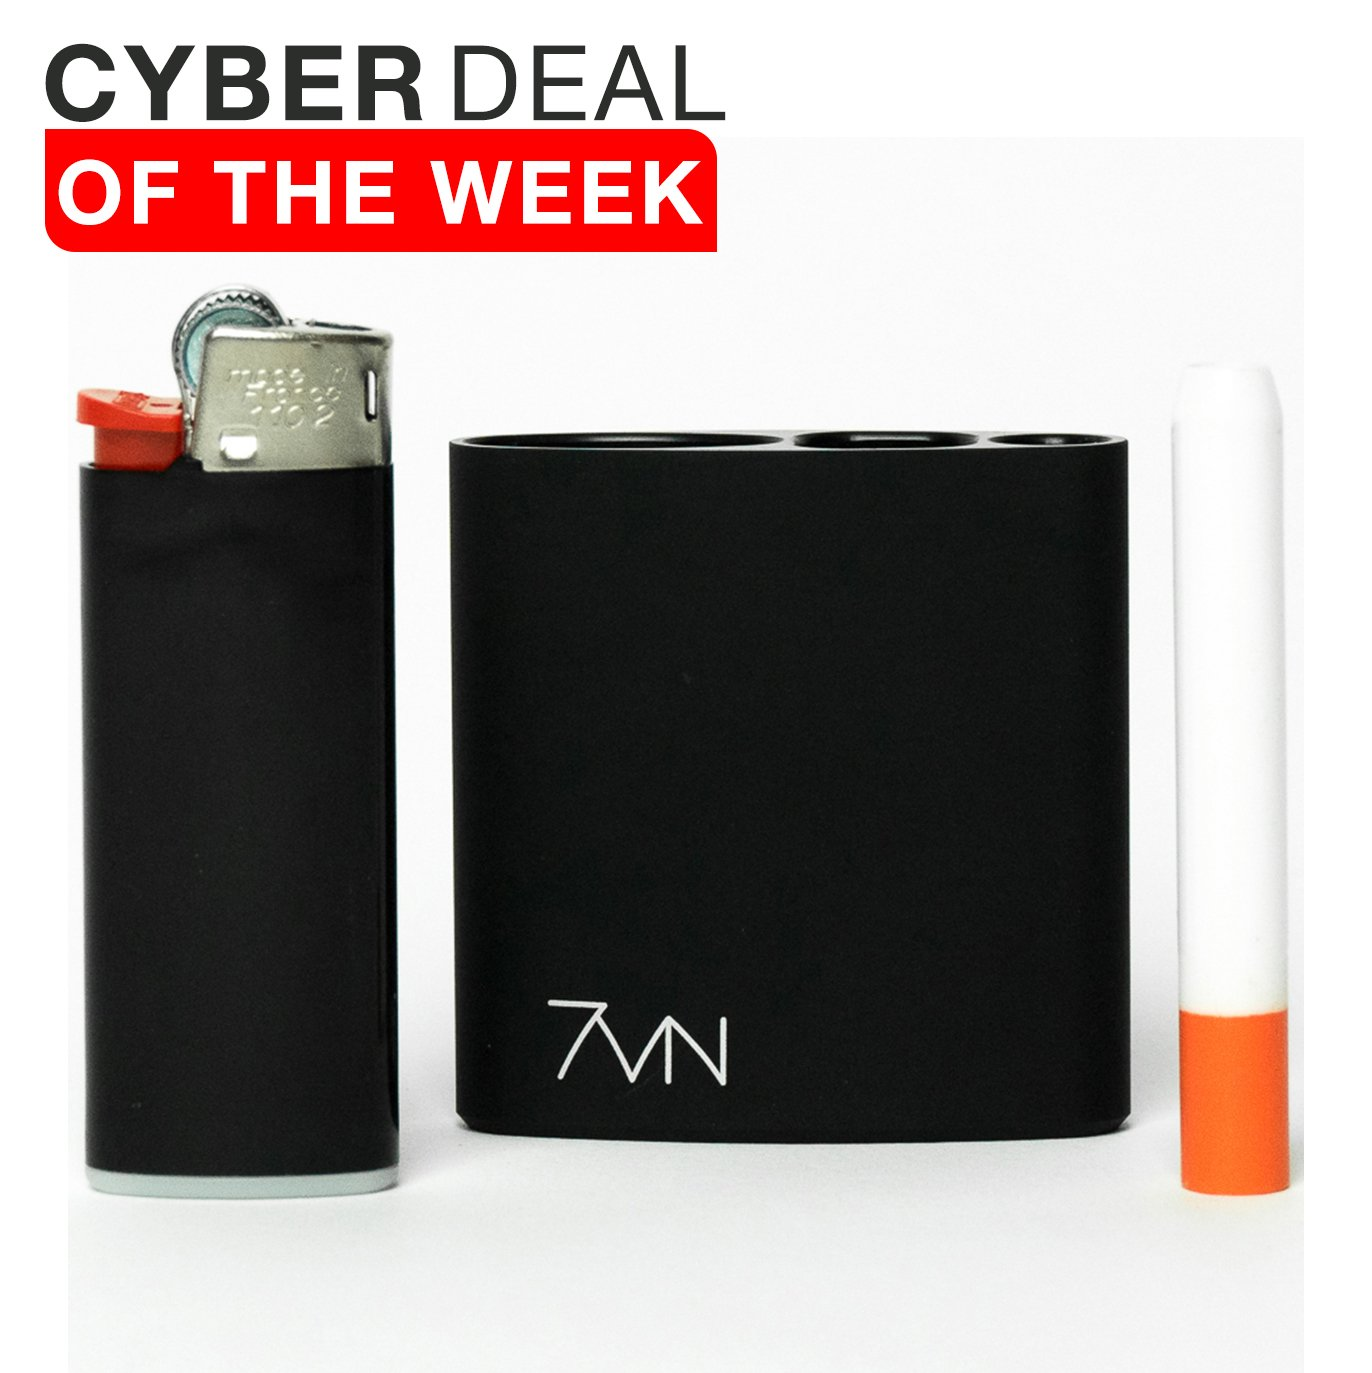 7vn - All in One Smell Proof Case Machined Anodized Aluminum (Matte Black)